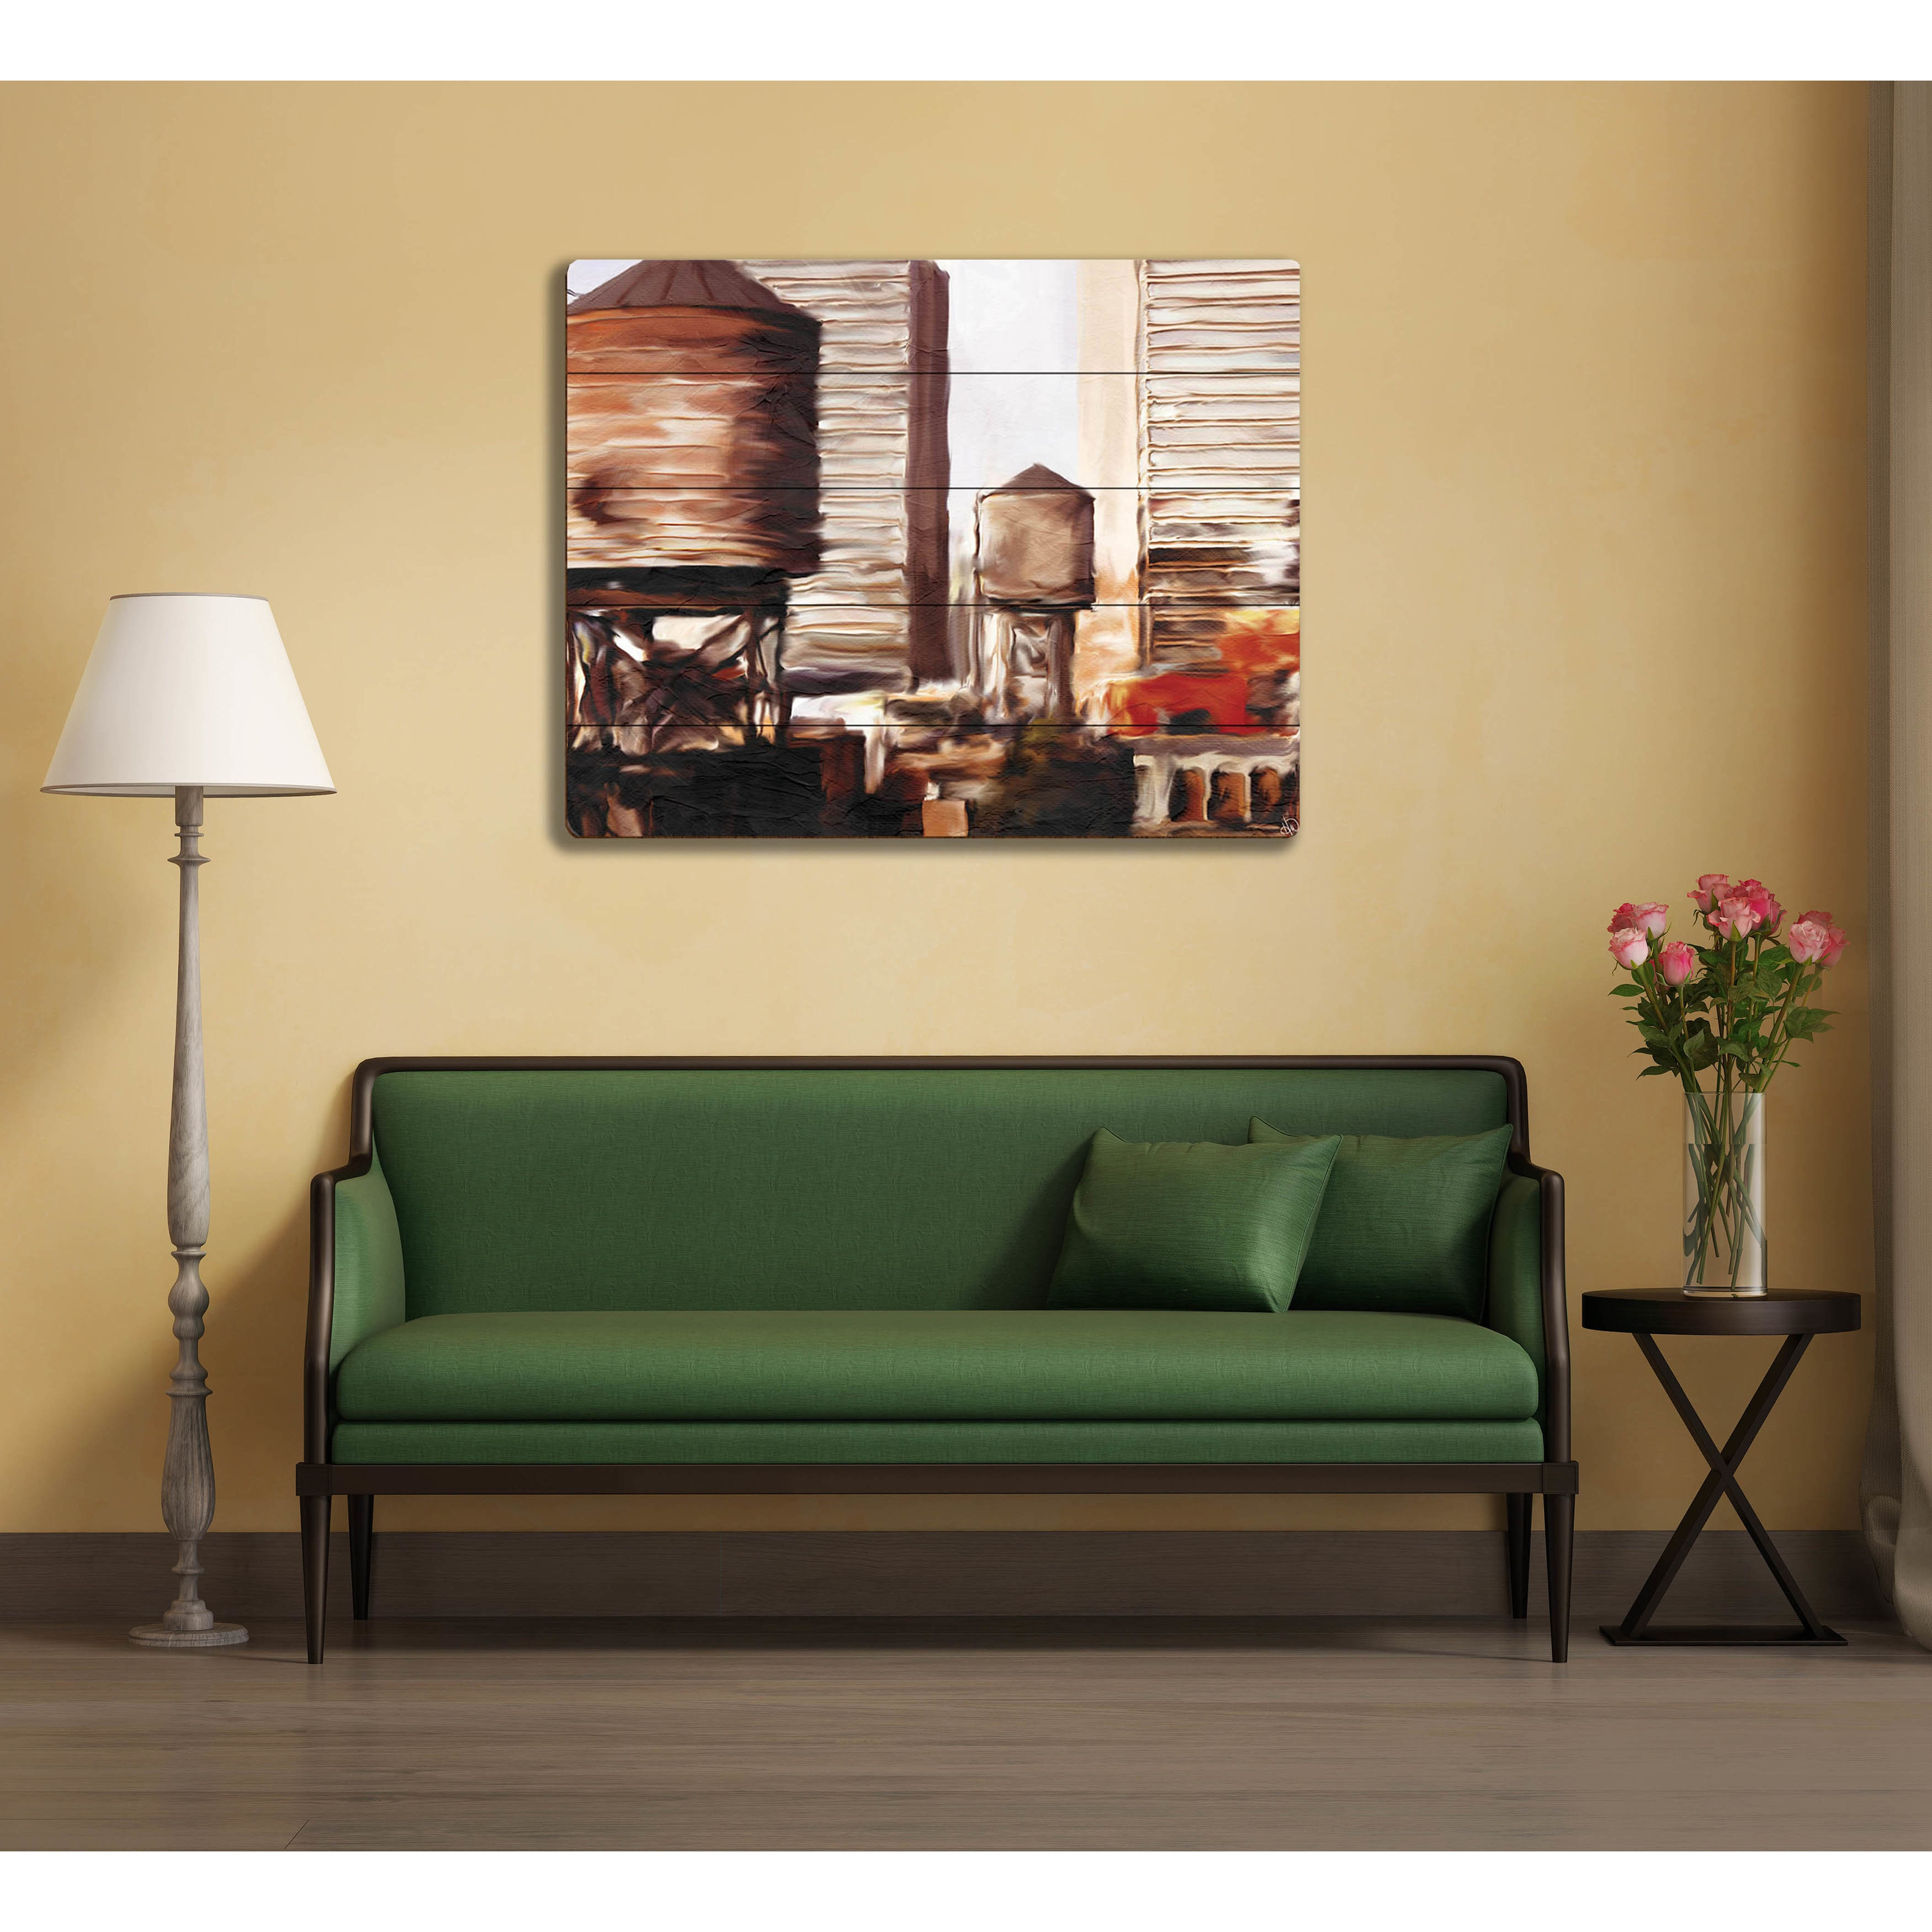 Best Rustic Wall Art Gallery - The Wall Art Decorations ...